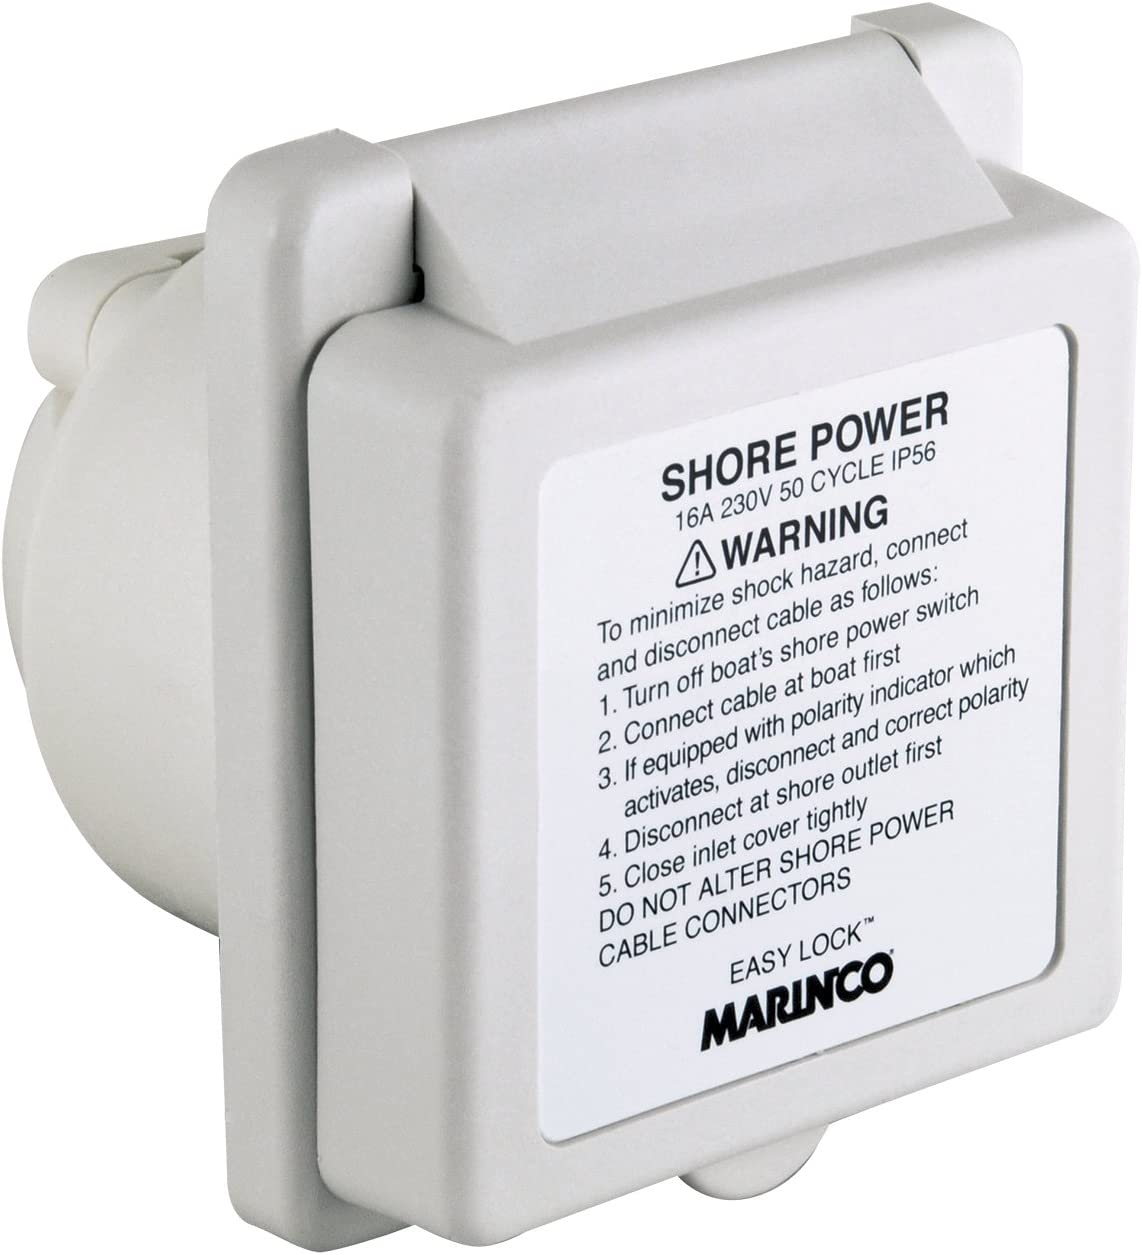 Marinco Max 71% OFF 16A 230V Easy Lock NEW before selling Sta Glass-Filled Watertight Polyester